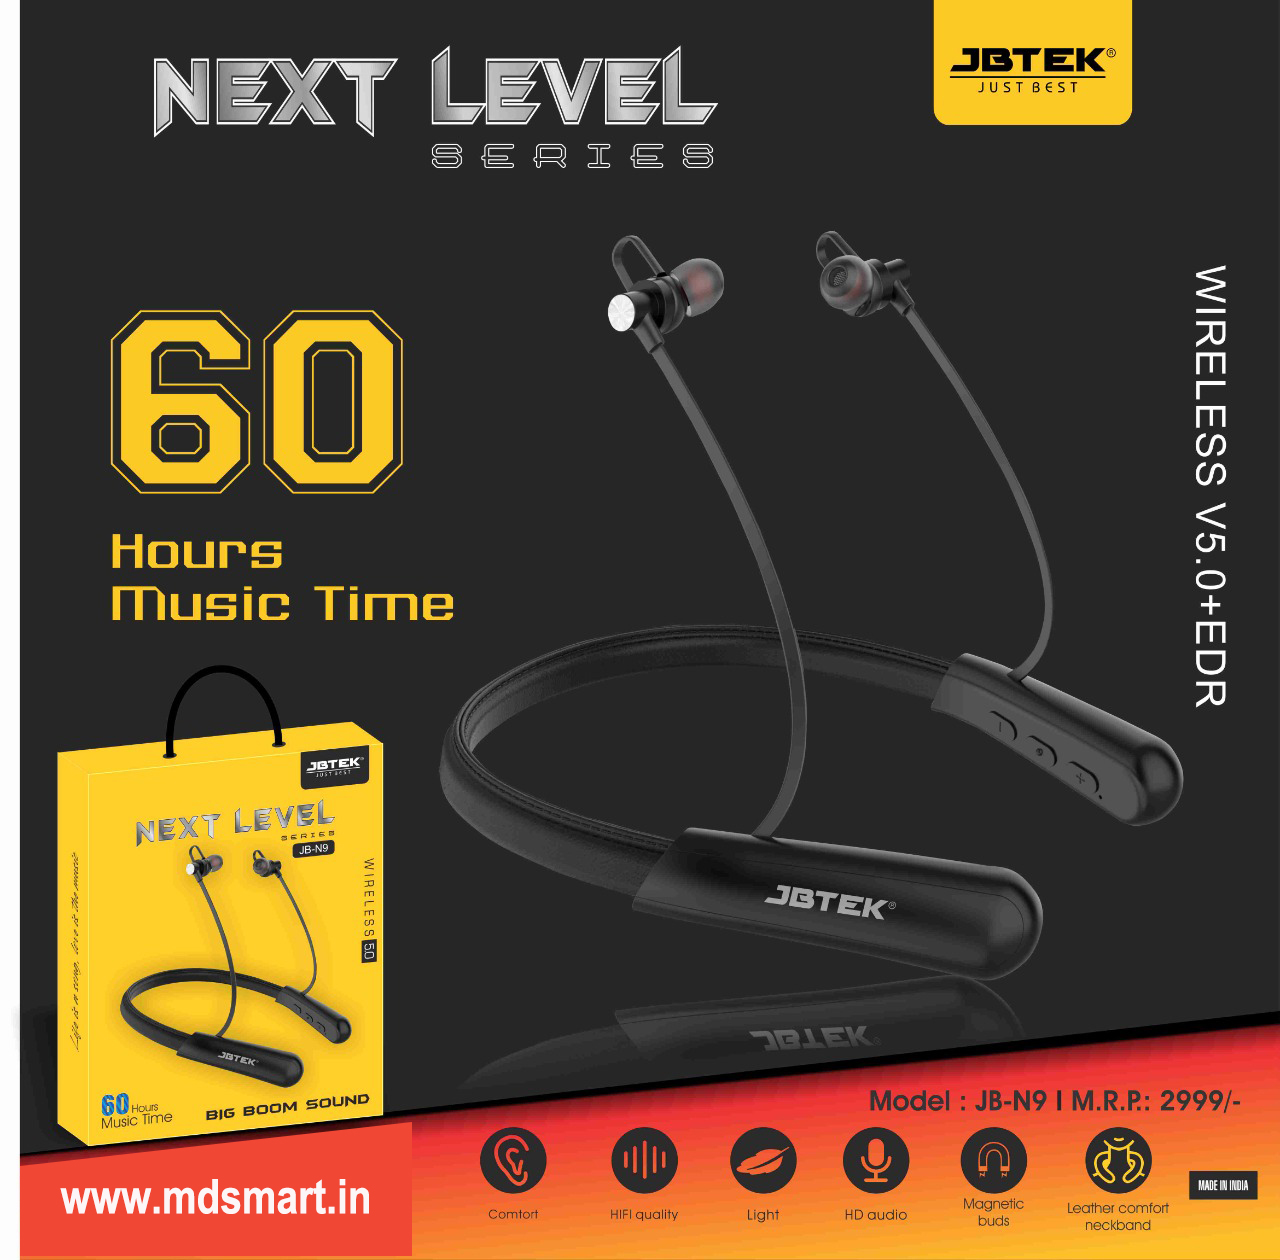 JBTEK JB-N9 Wireless Neckband